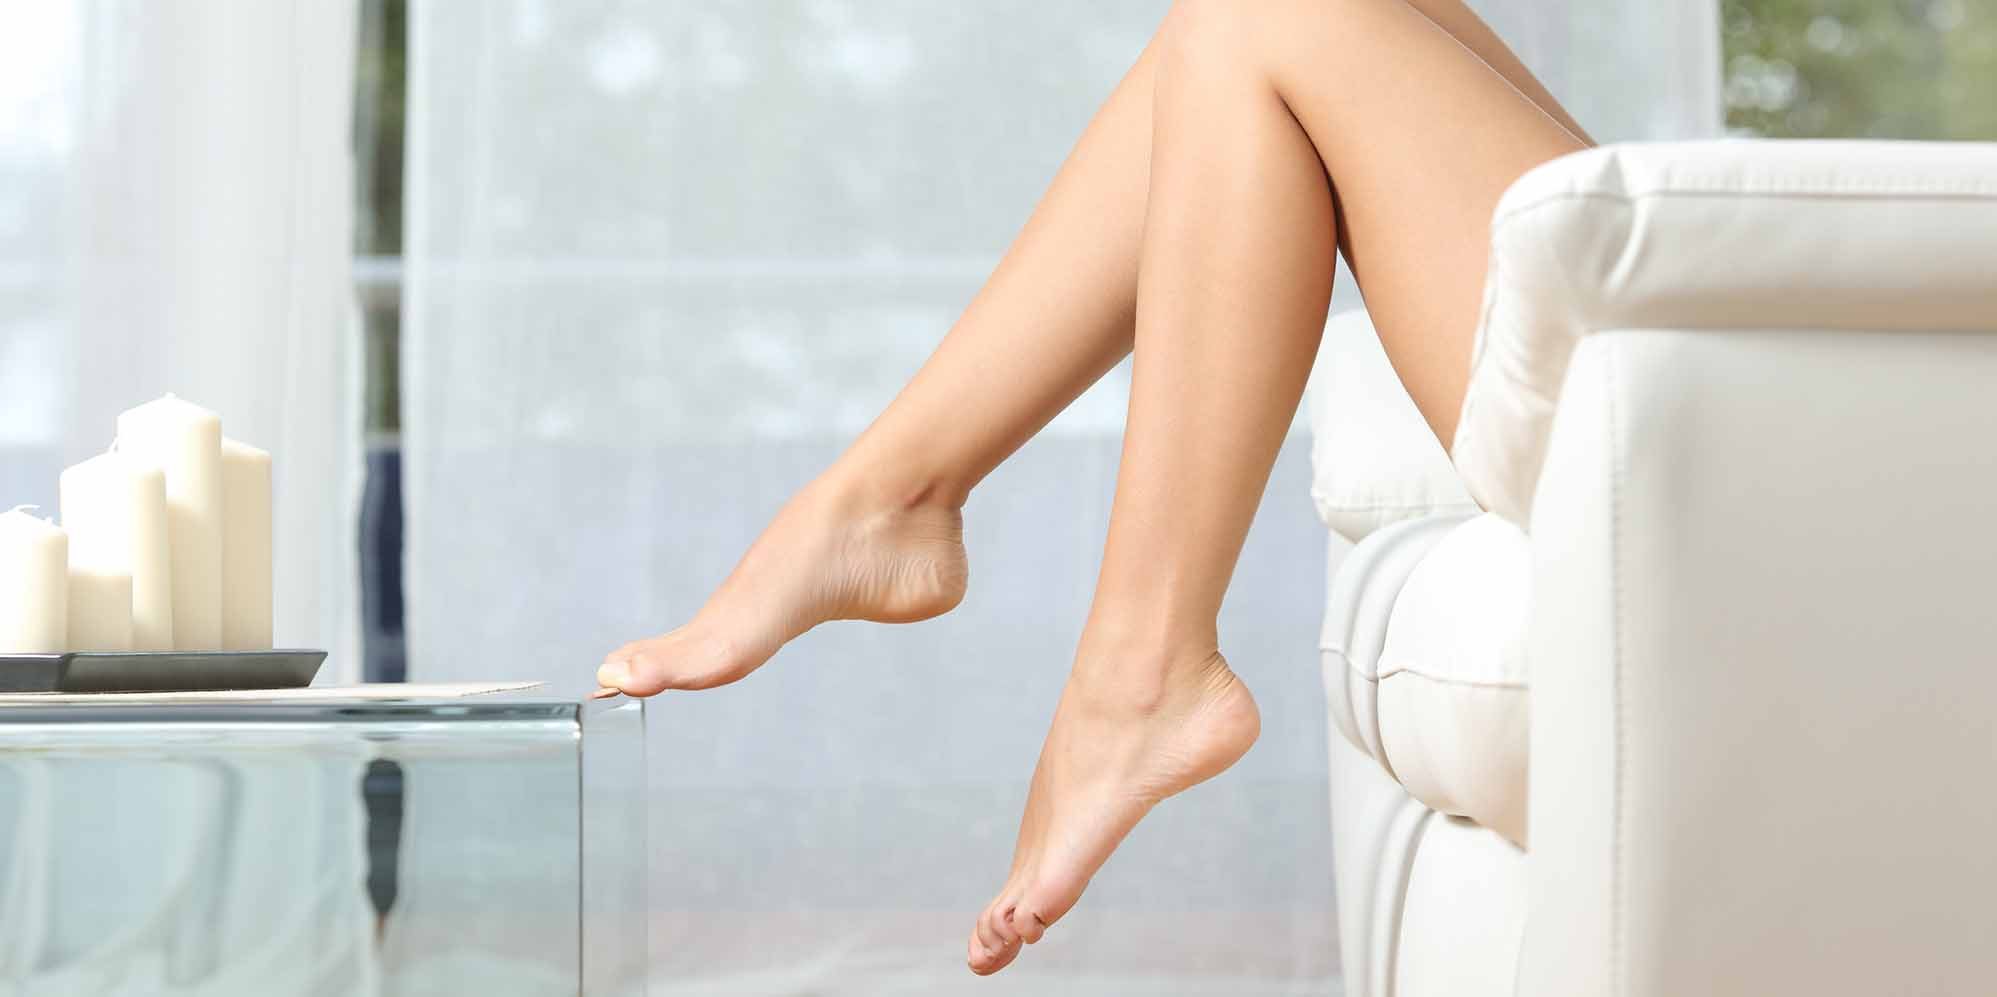 Everything You Need to Know Before Getting Laser Hair Removal